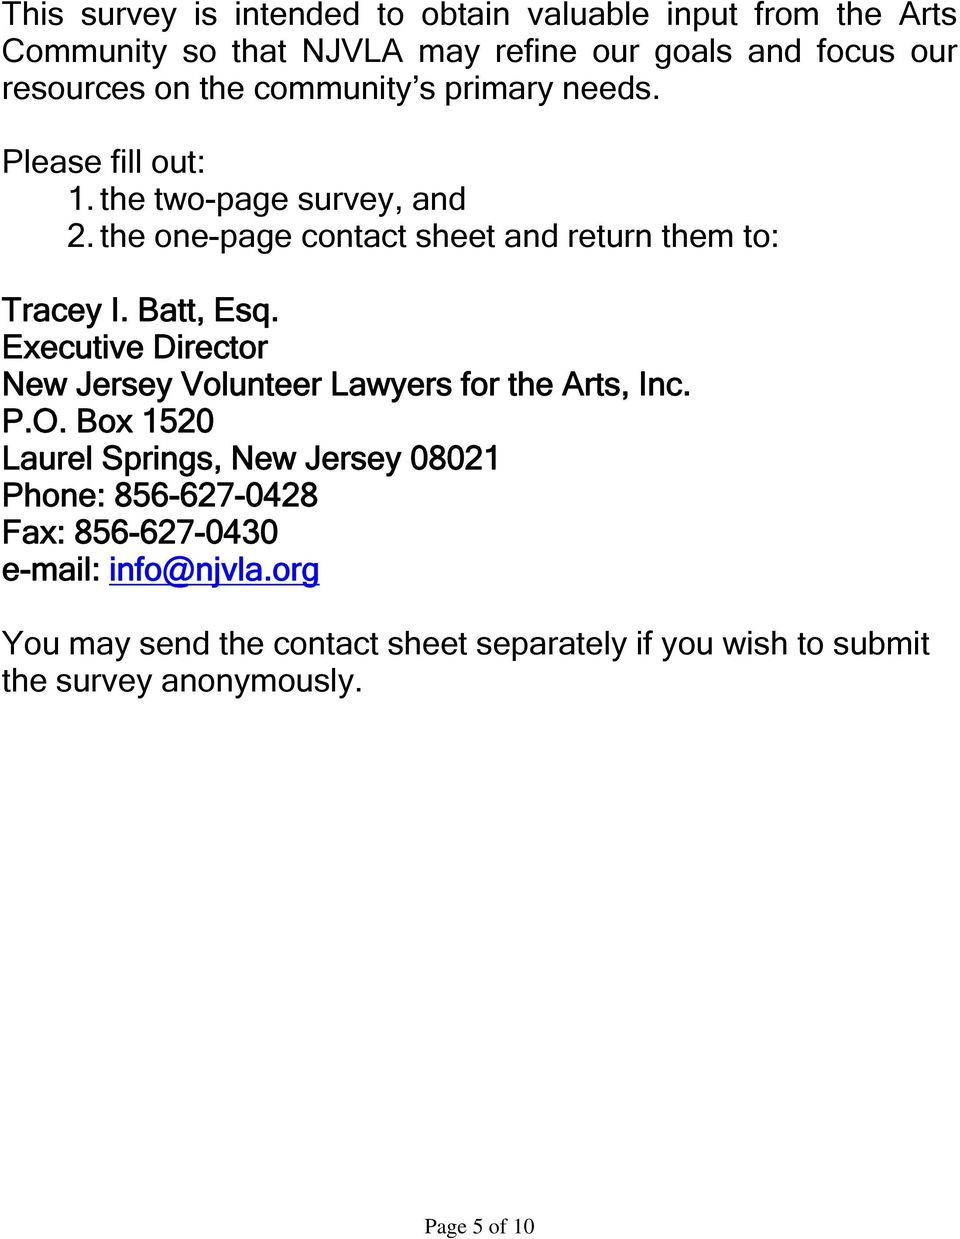 Batt, Esq. Executive Director New Jersey Volunteer Lawyers for the Arts, Inc. P.O.